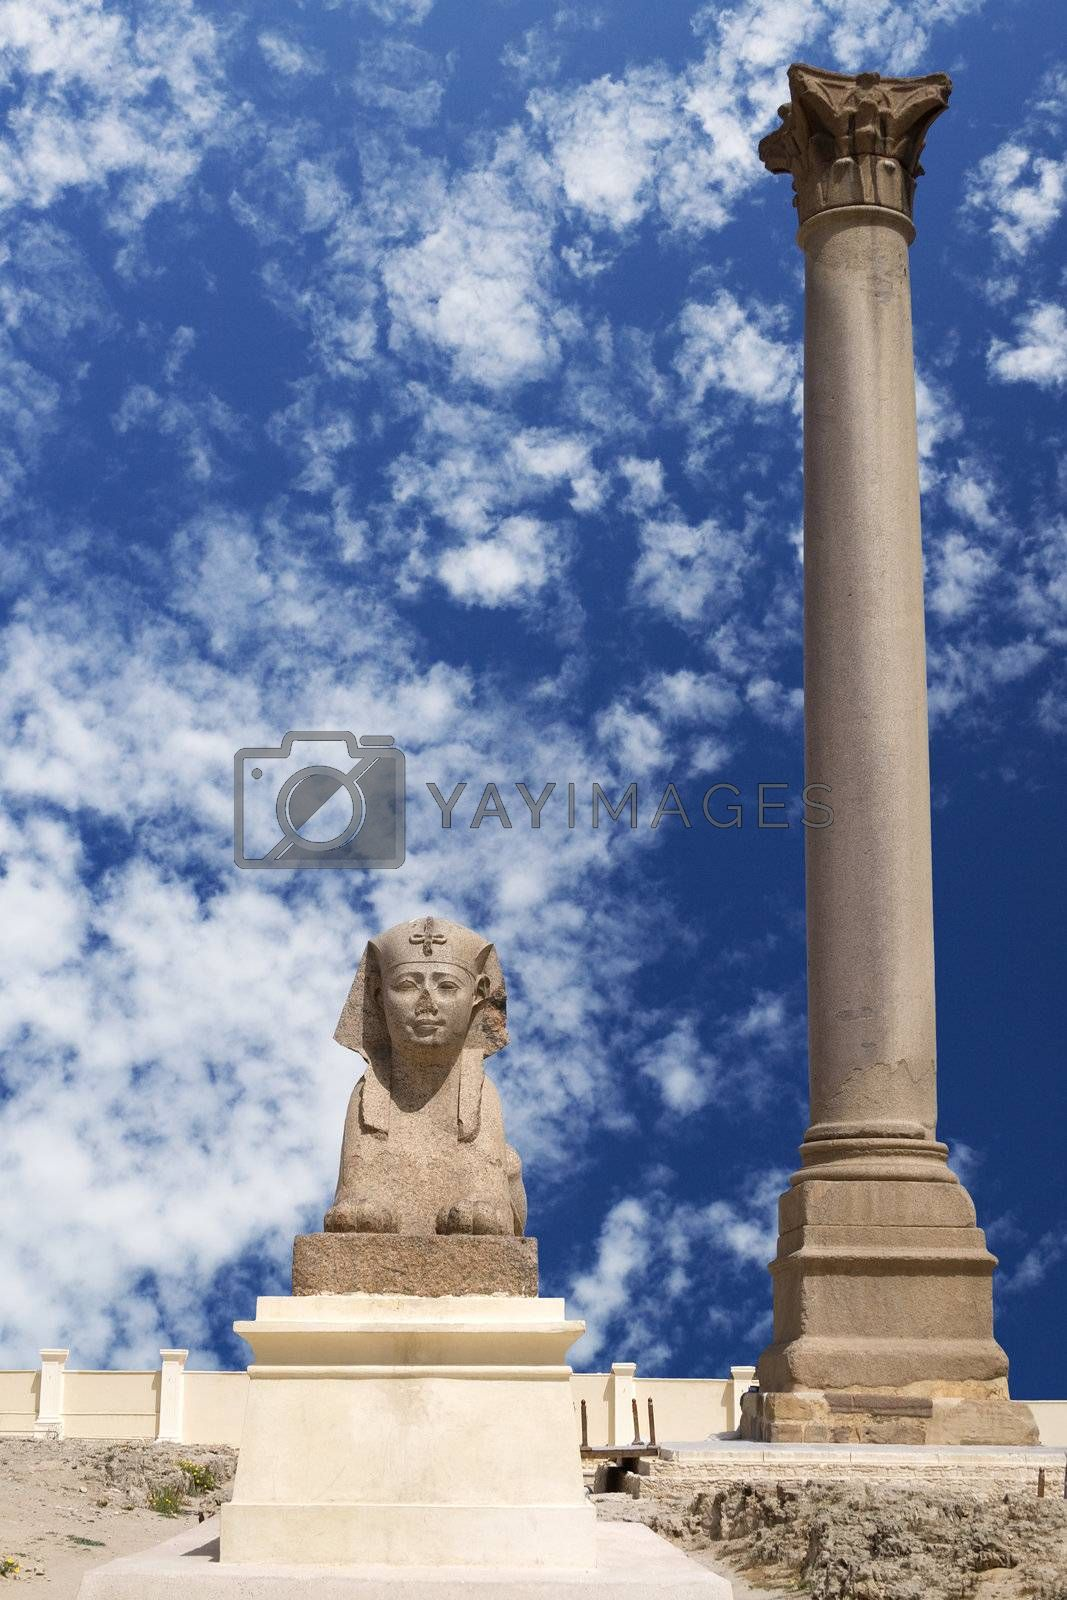 Royalty free image of Ptolemaic Sphinx and Pompey's Pillar, Egypt by shariffc